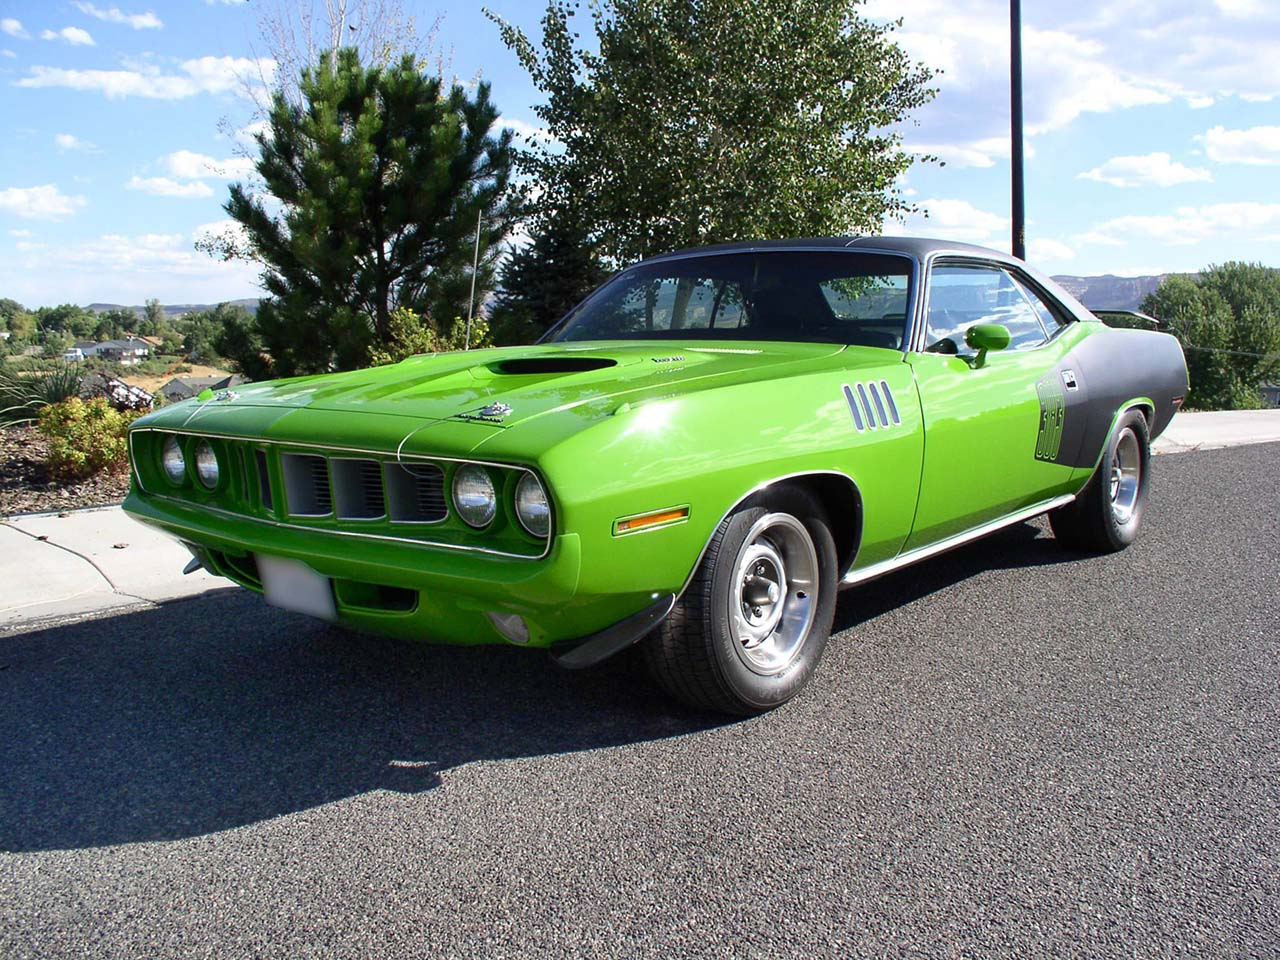 20 Classic & Badass Muscle Cars That Will Never Get Old #19: Plymouth Barracuda (1971)